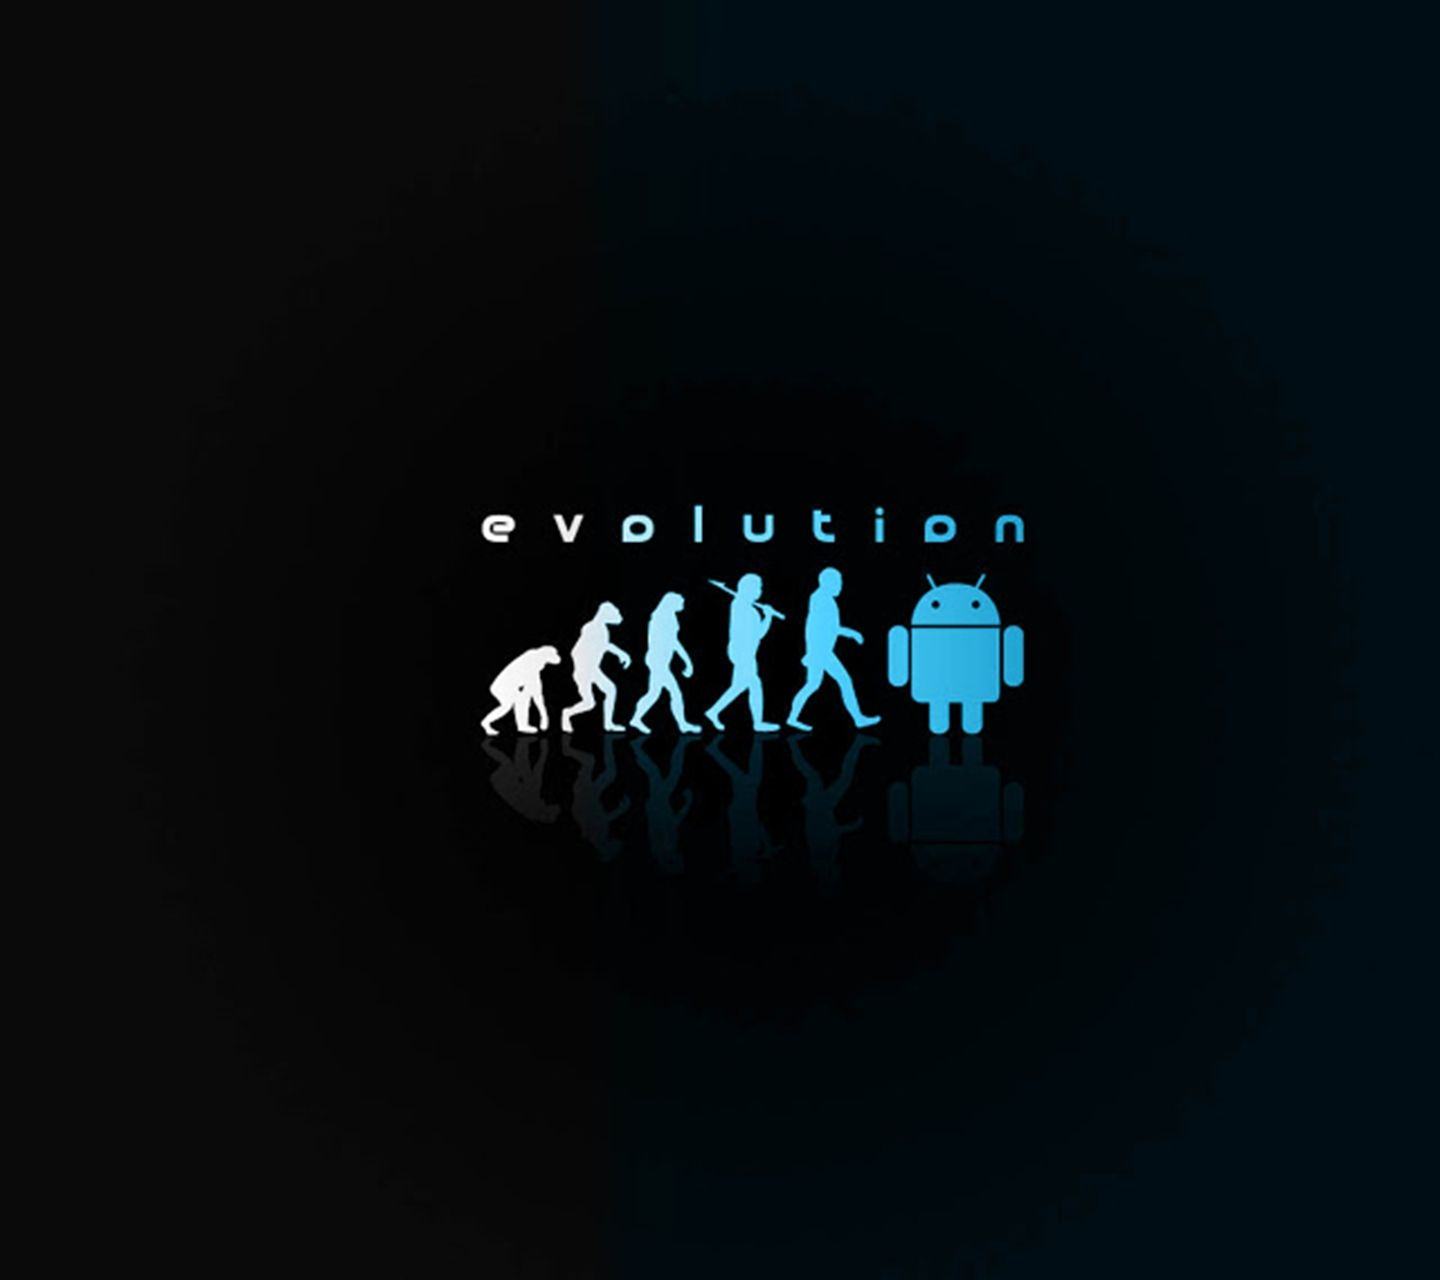 Download · Android Hd Evolution Hd,1440x1280,1280x1440,free,hot,mobile phone wallpapers